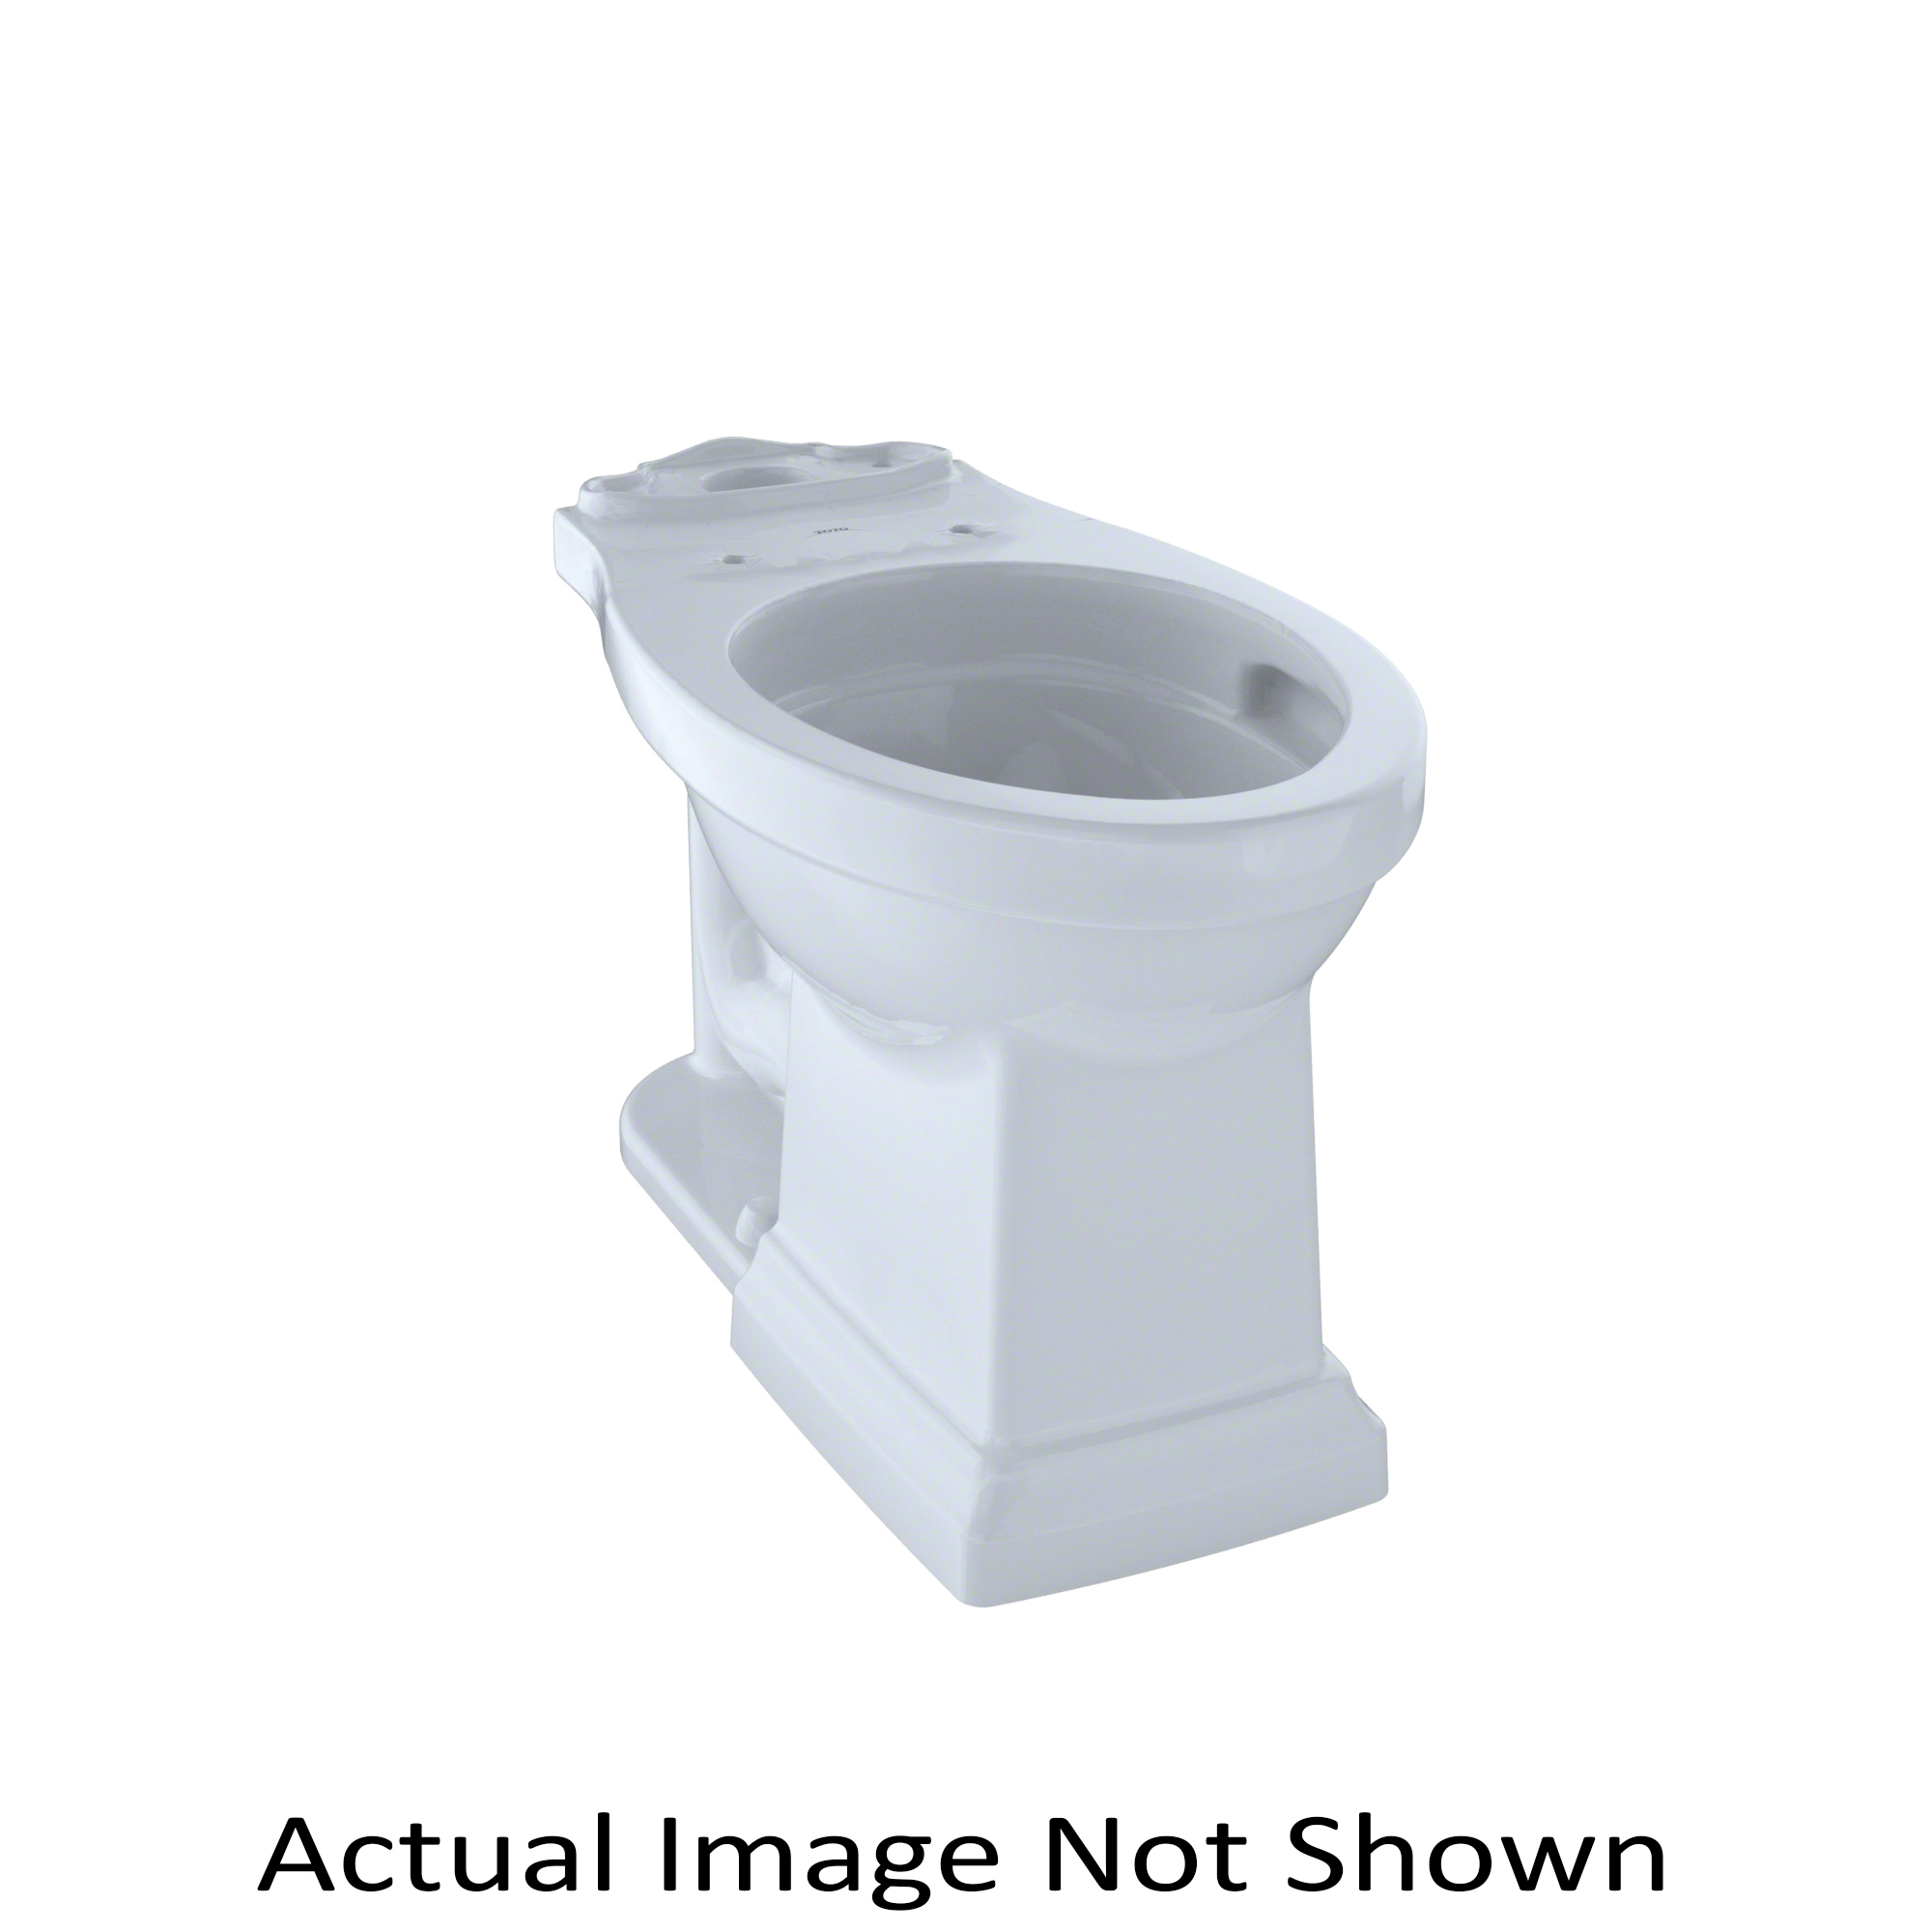 Toto® C404CUFG#03 Promenade® II Toilet Bowl, Elongated, 6-3/4 x 9 in Water Surface, 17-1/4 in H Rim, 2-1/8 in Trapway, Domestic